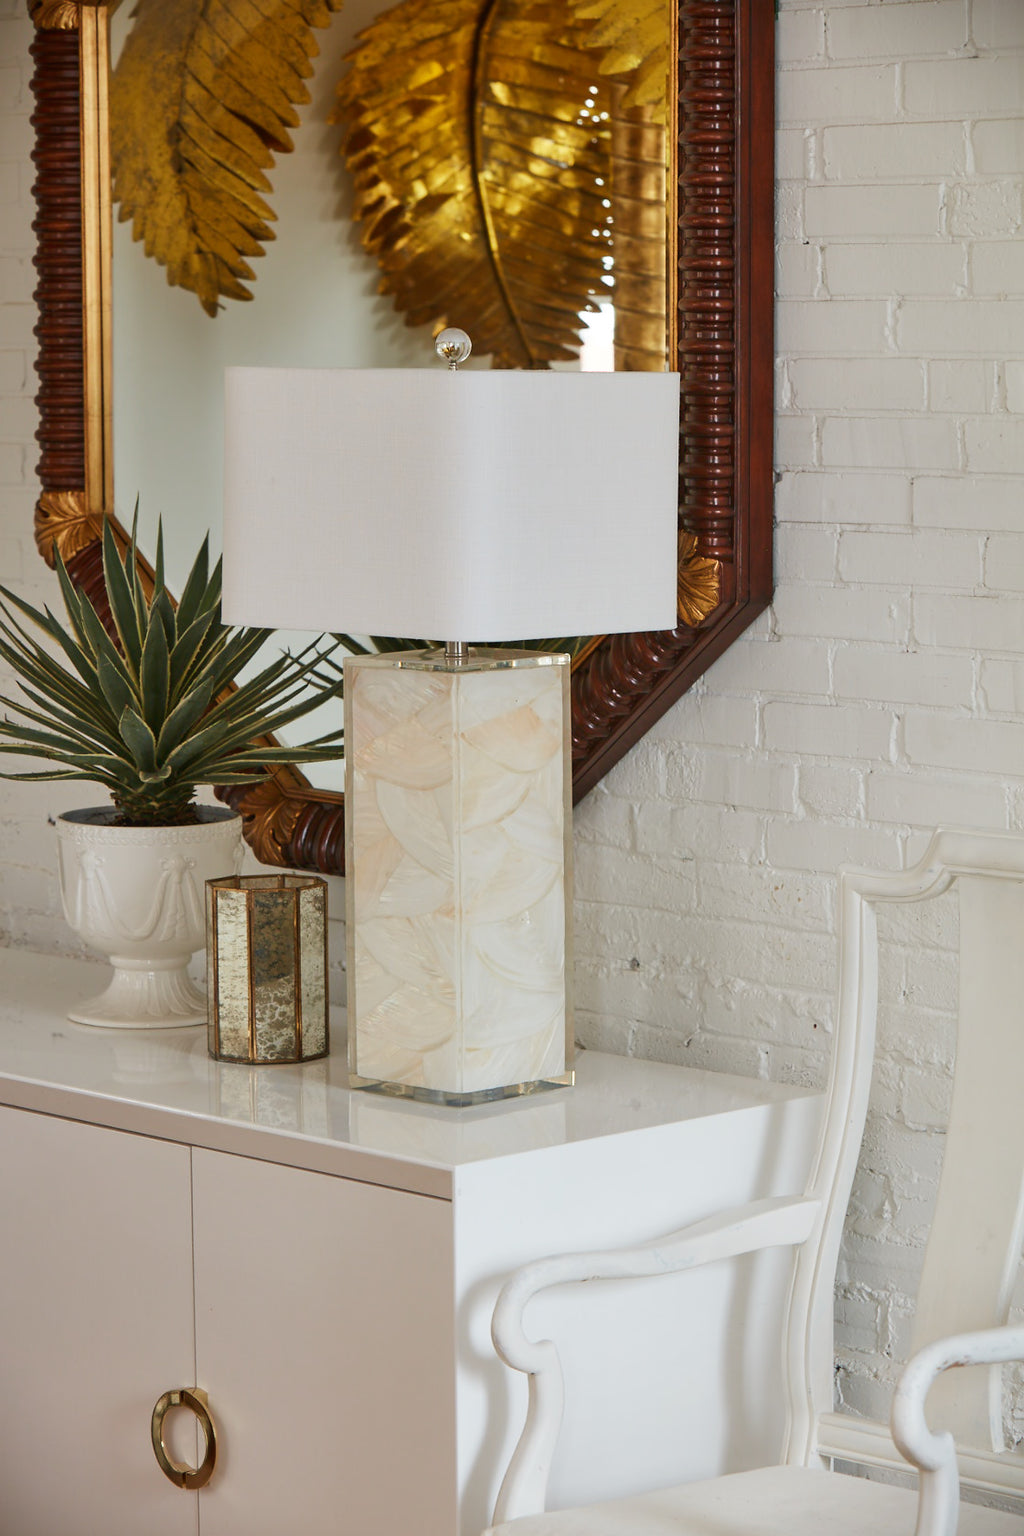 Sanibel Table Lamp - Couture Lamps